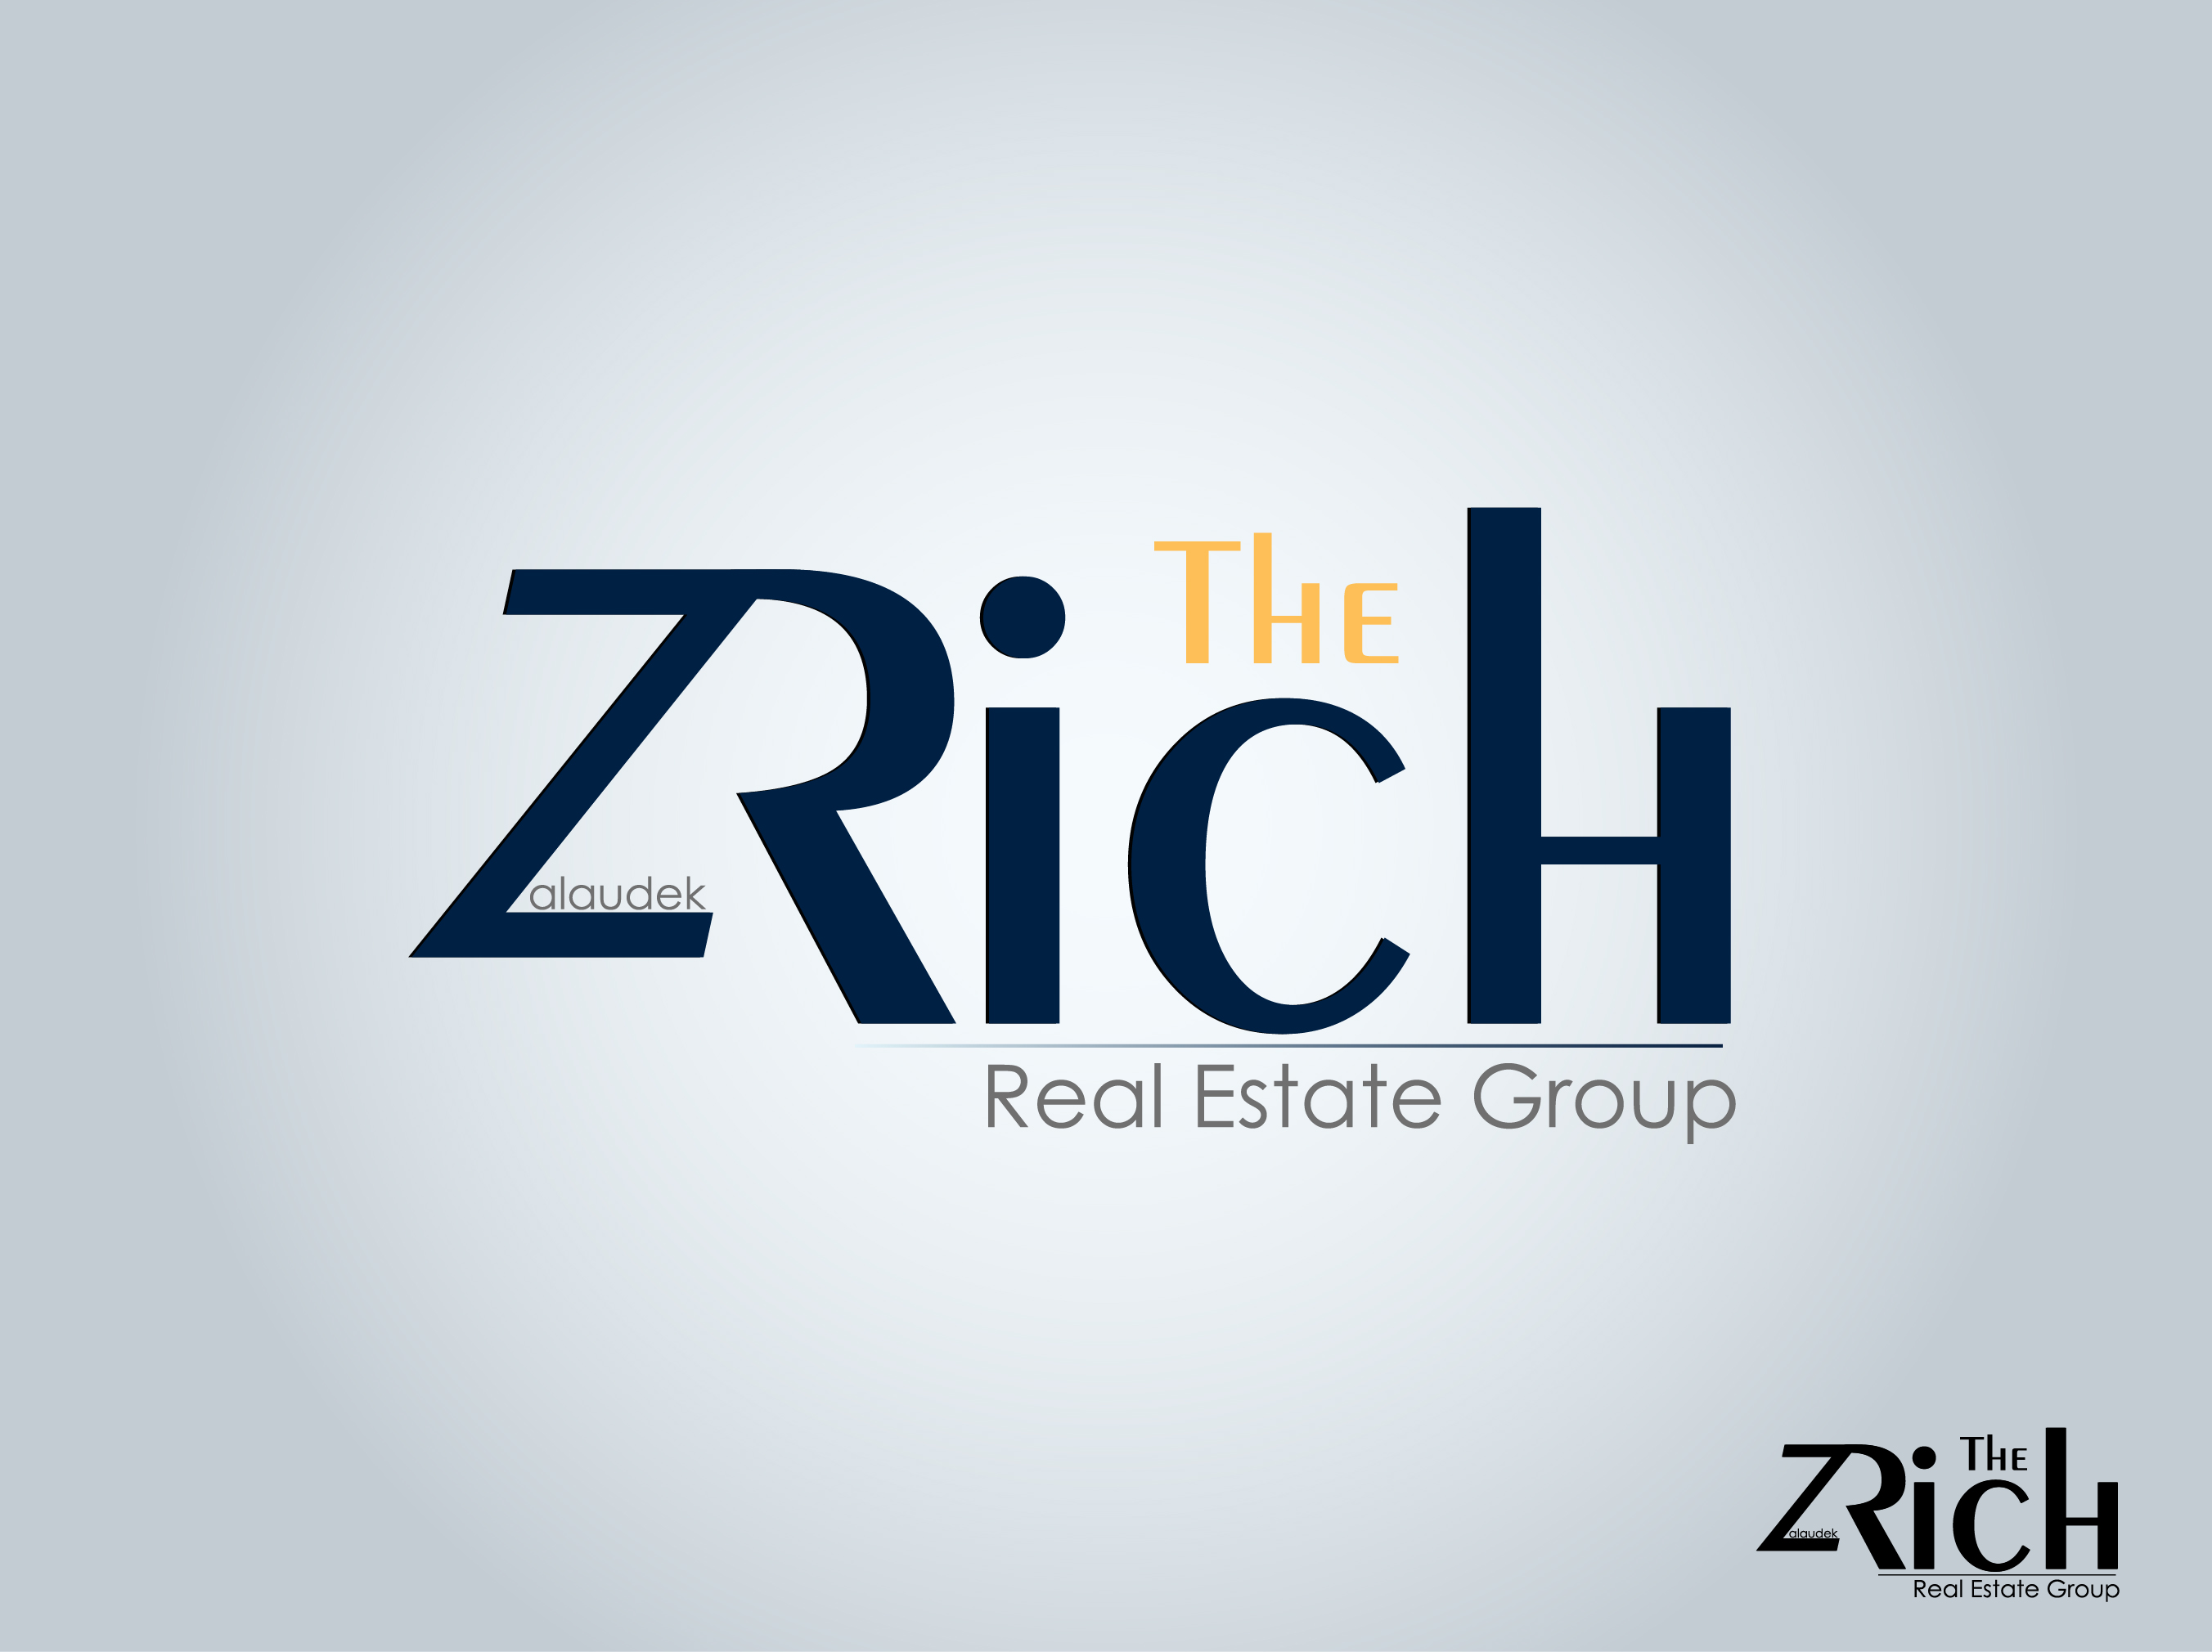 Logo Design by nTia - Entry No. 8 in the Logo Design Contest The Rich Z. Real Estate Group Logo Design.